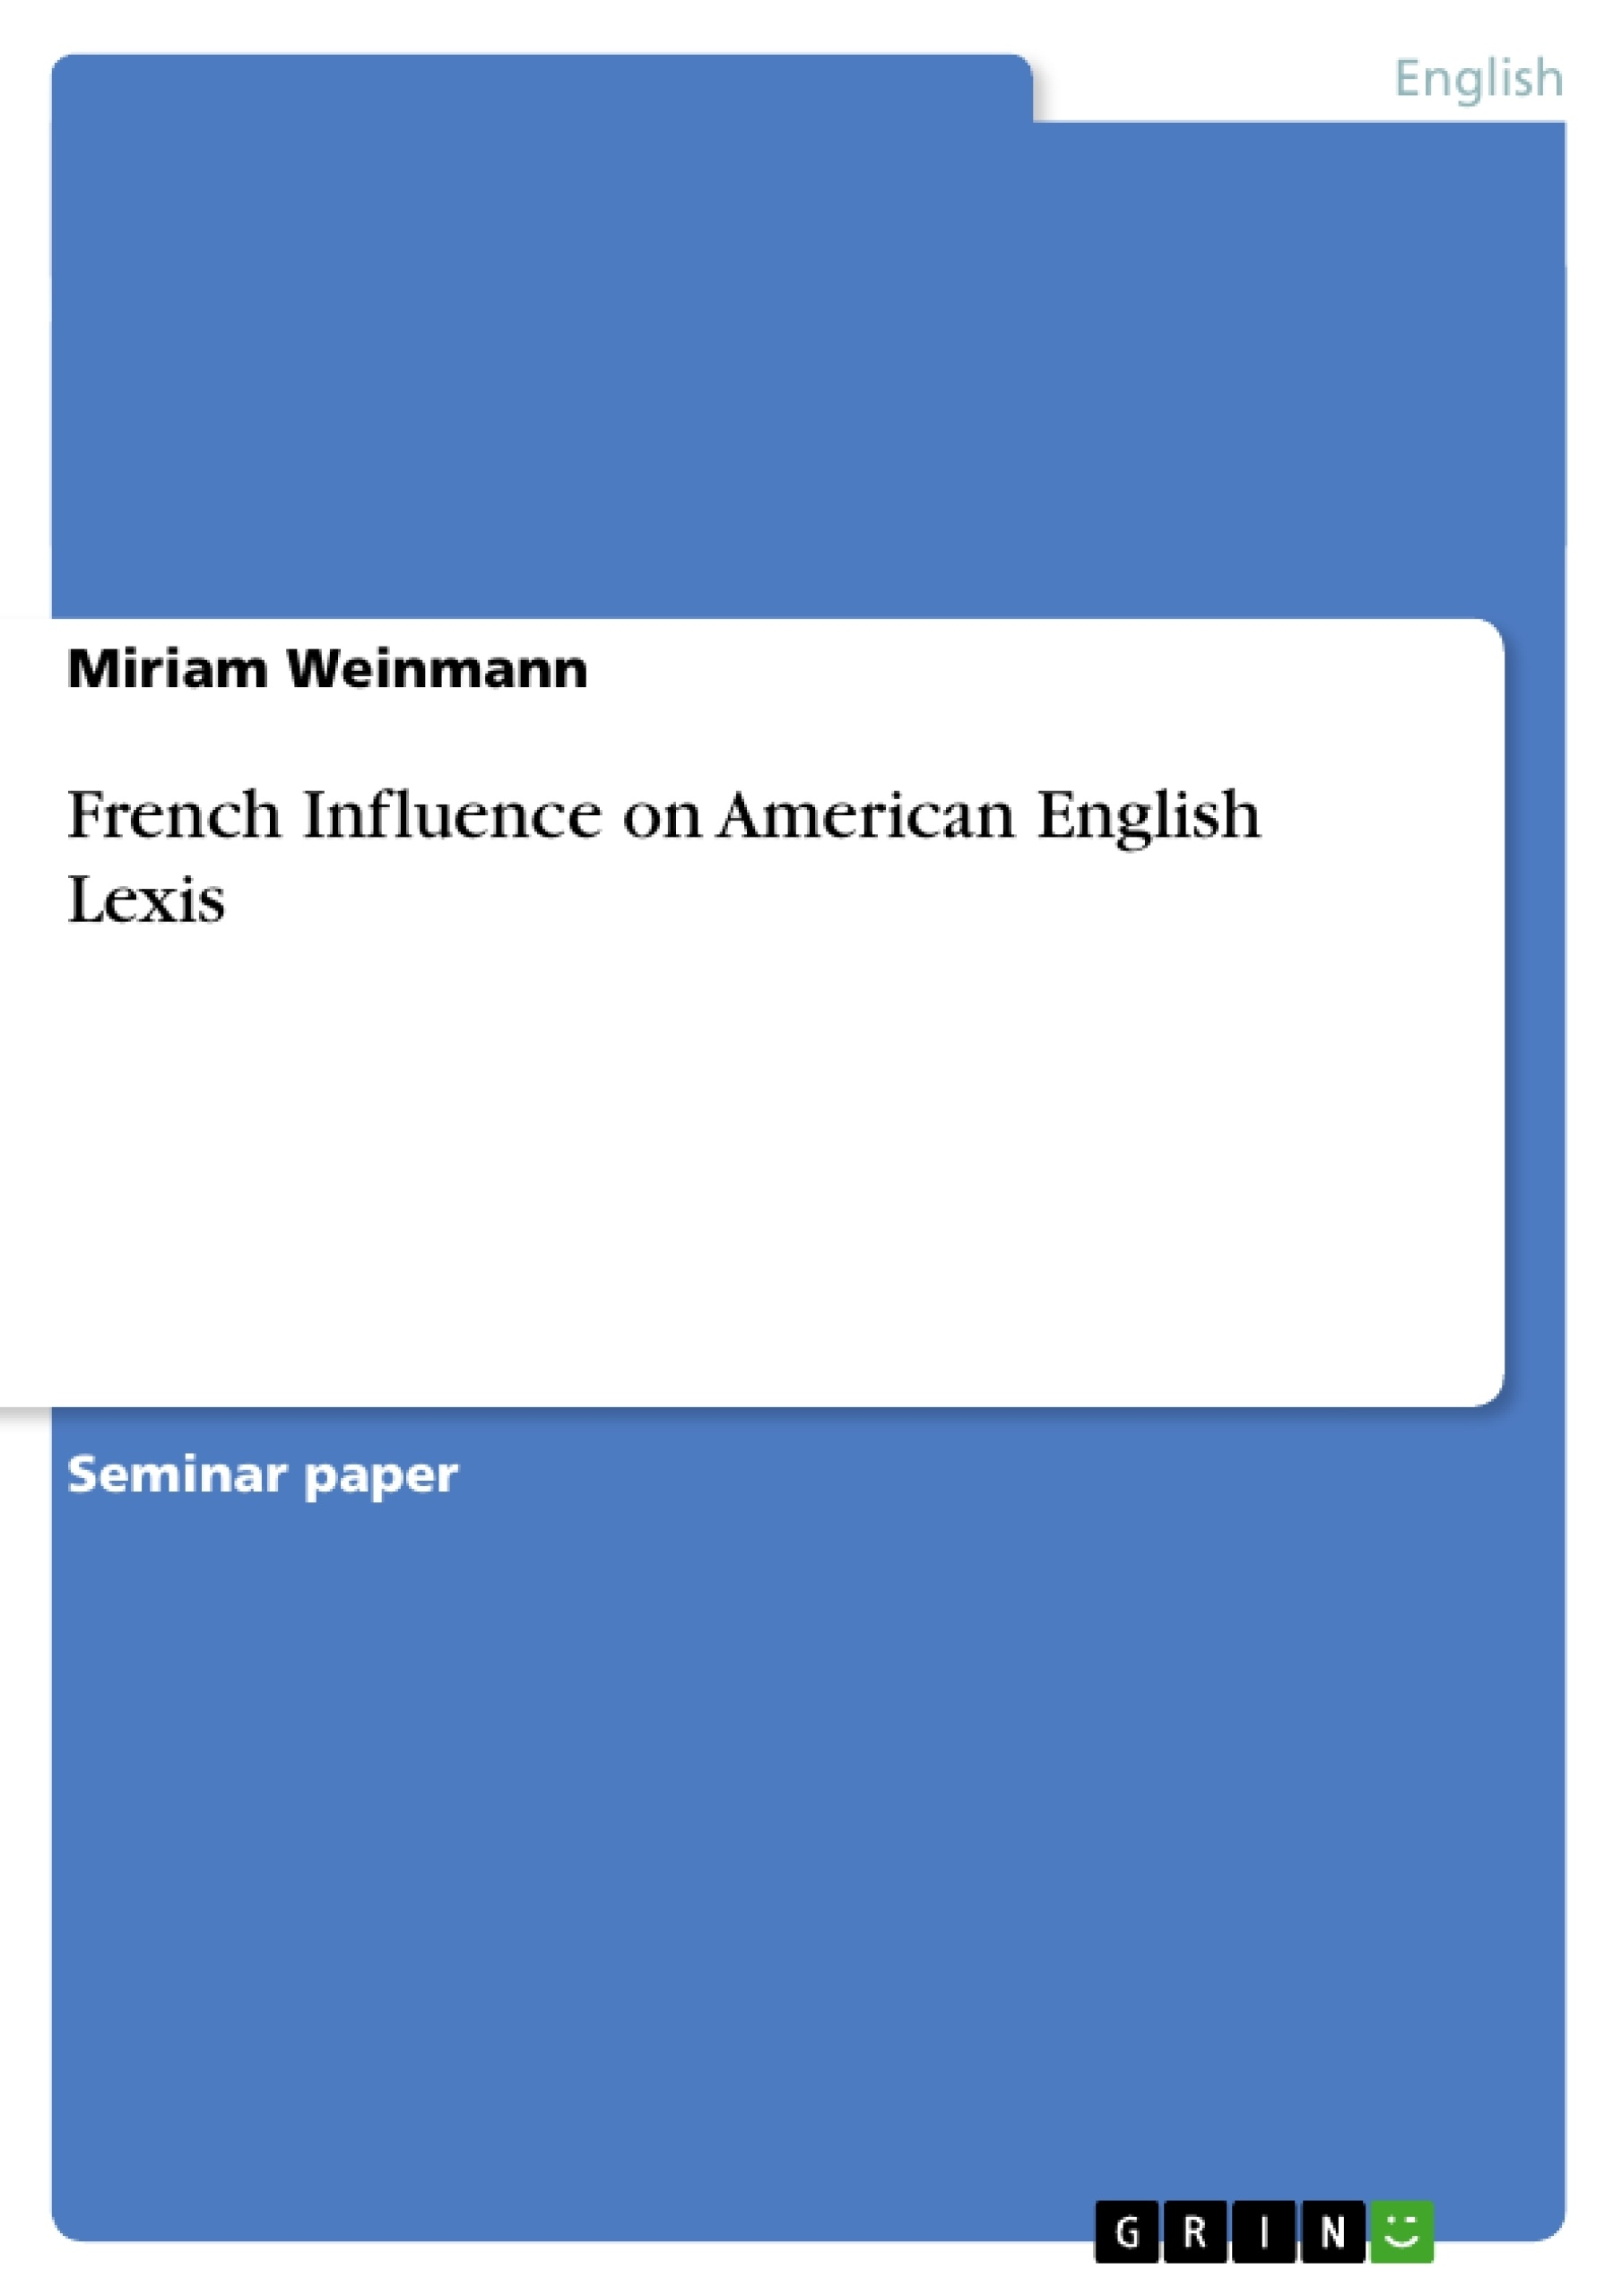 Title: French Influence on American English Lexis